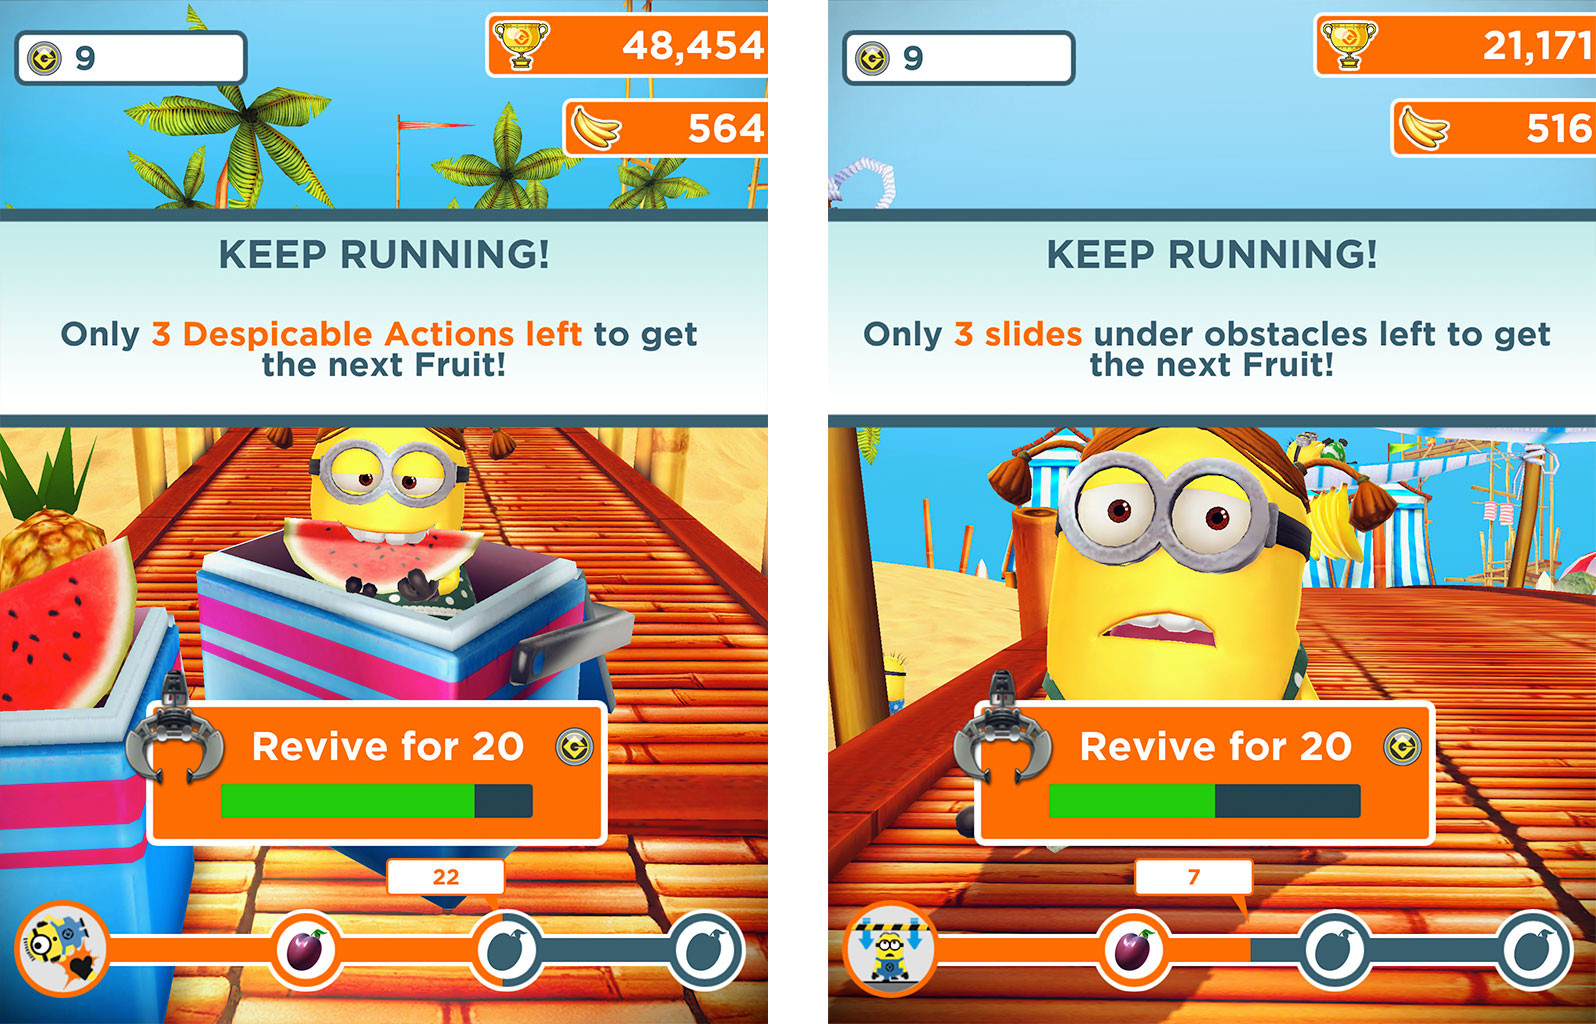 Apple News: Despicable Me: Minion Rush tips, tricks, and cheats